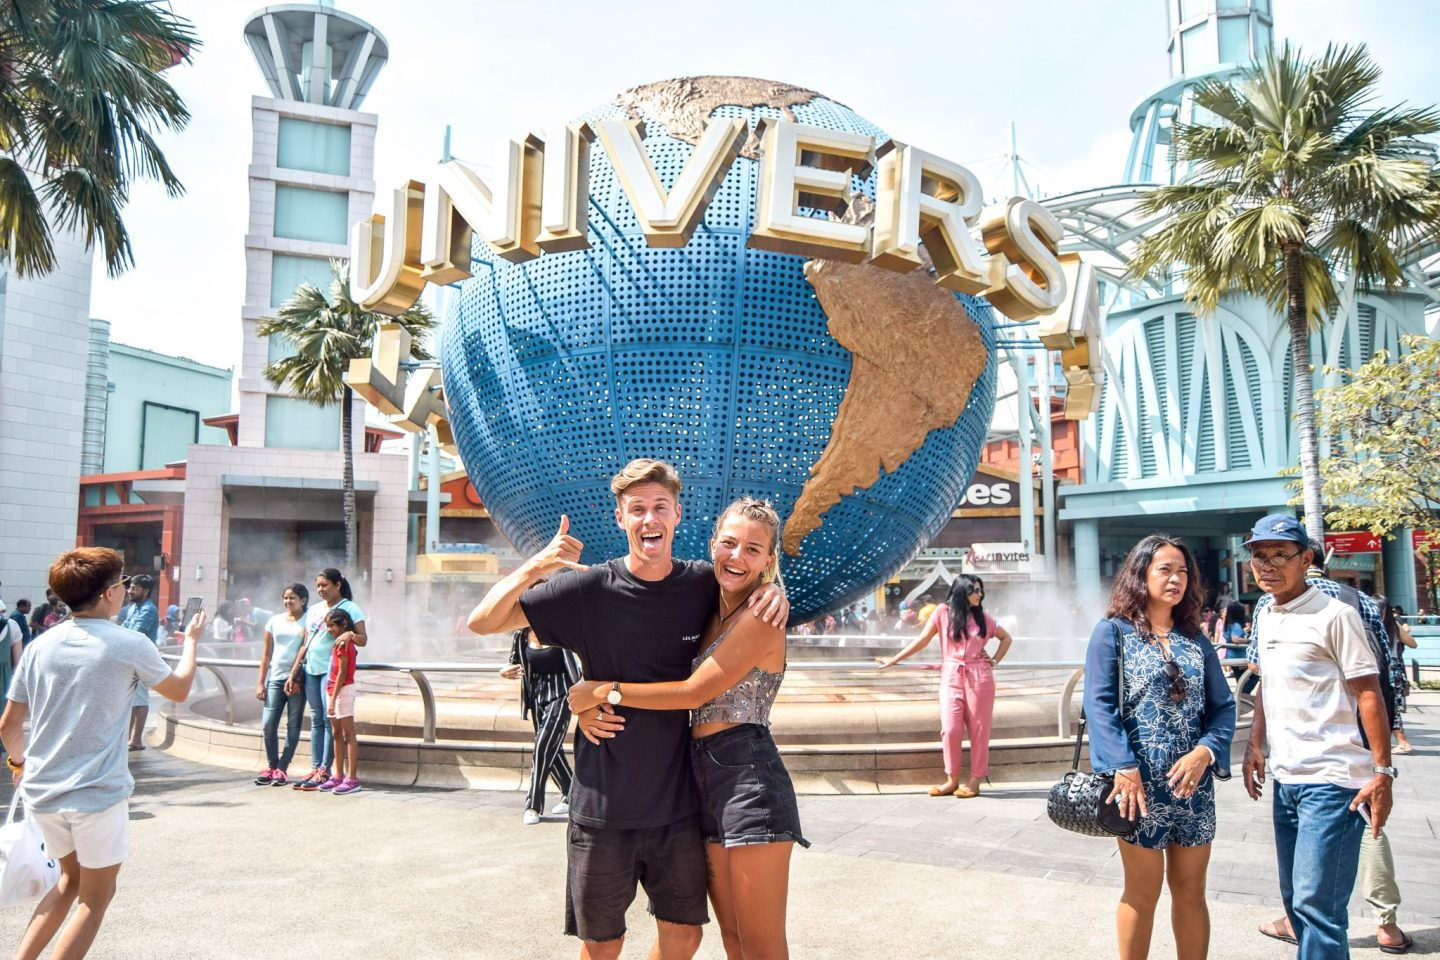 Wanderers & Warriors - Charlie & Lauren UK Travel Couple - Universal Studios Singapore - Best Things To Do In Singapore